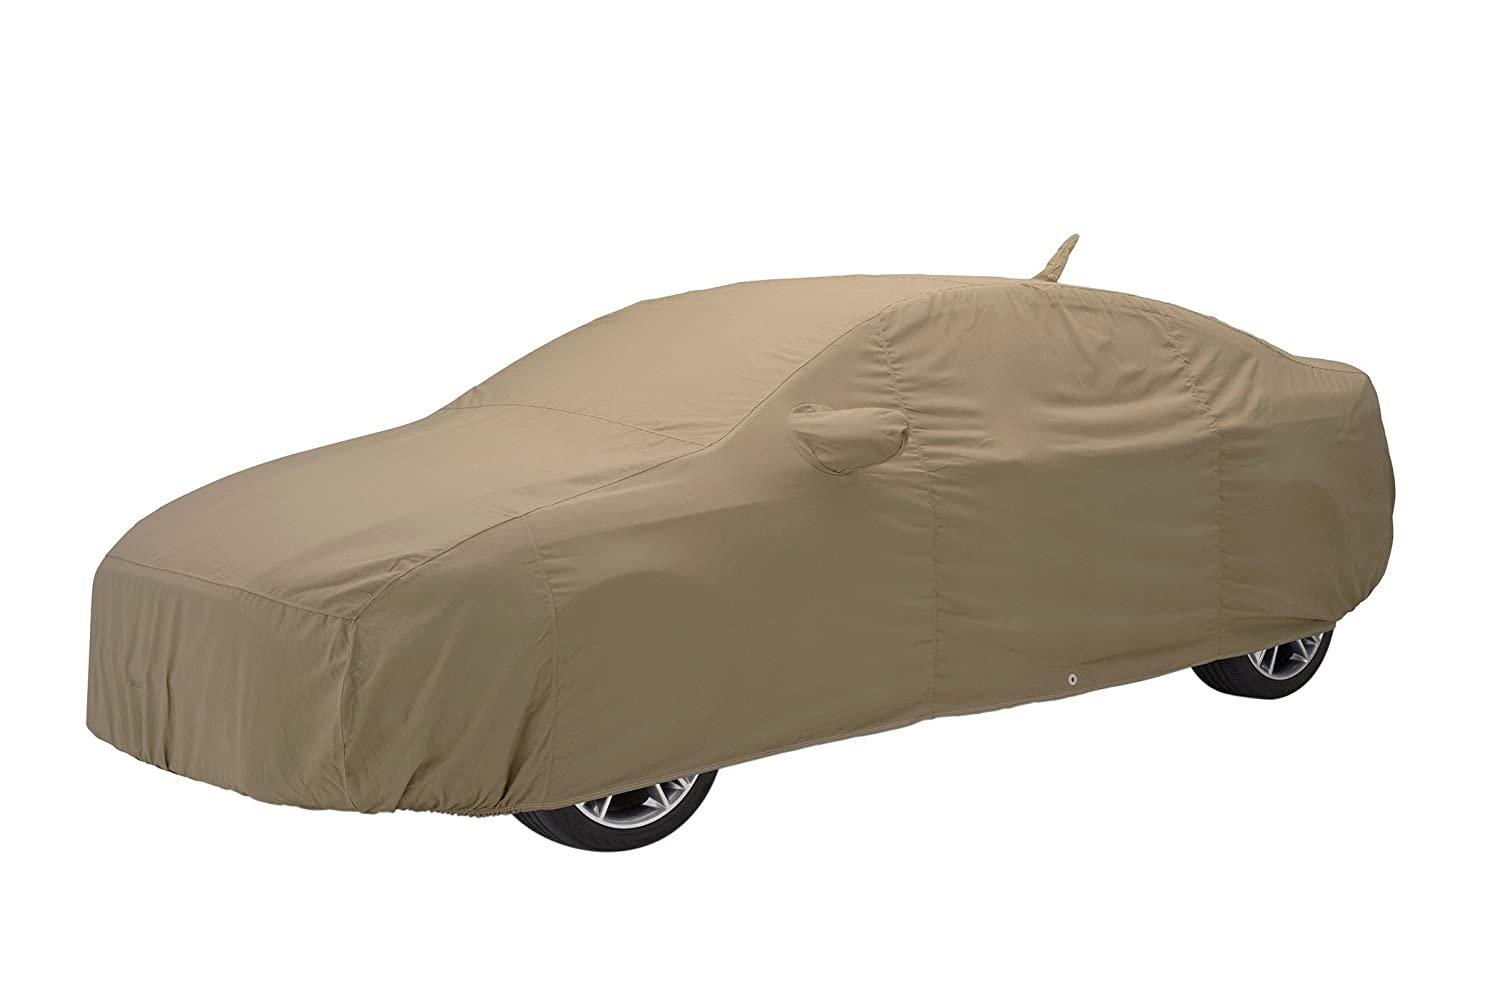 Covercraft Custom Fit Car Cover for Volvo 780 - Flannel Series Fabric, Tan